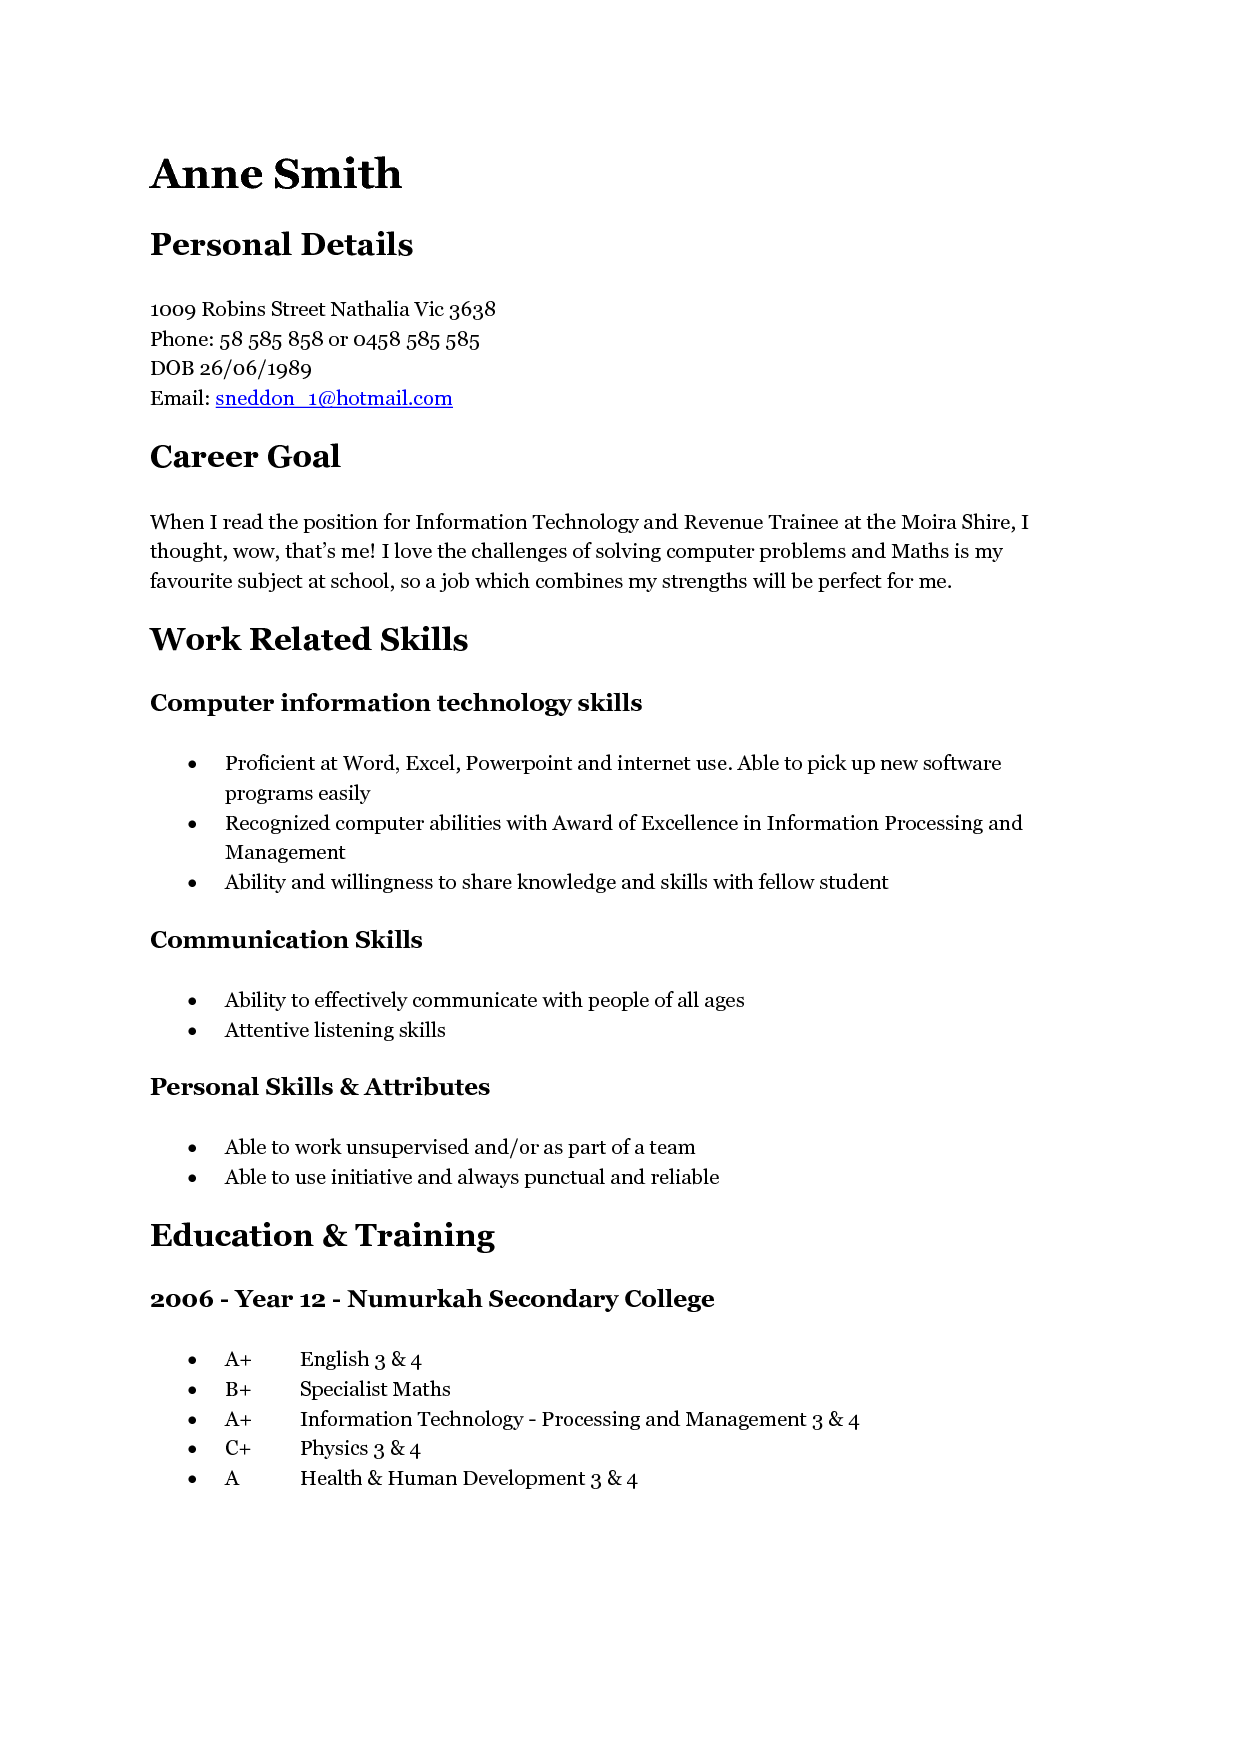 Exceptional Resume Templates For Teens #resume #ResumeTemplates #teens #templates